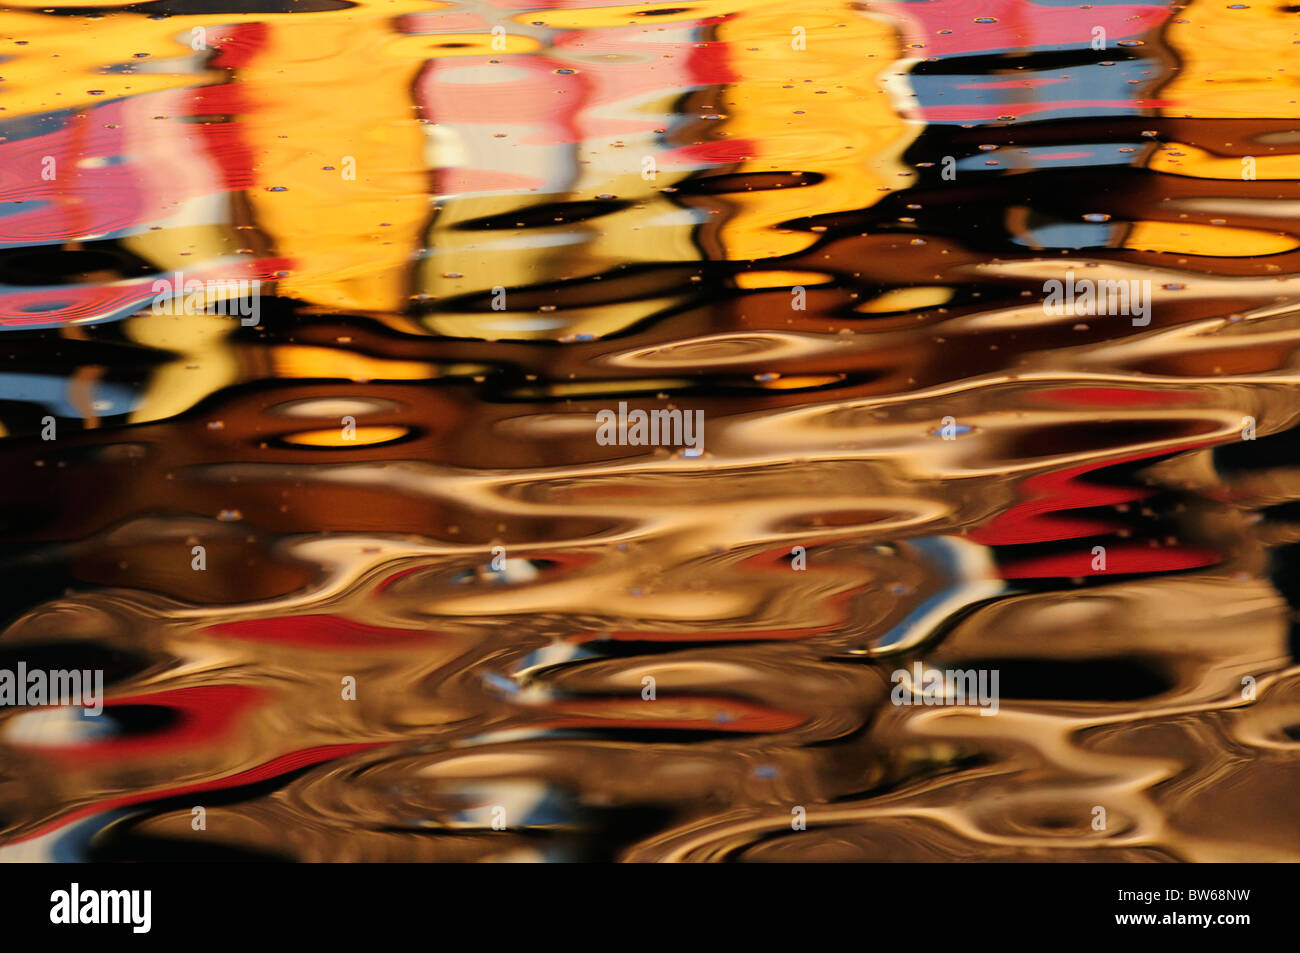 Abstract colourful reflection of Buildings in The River Cam, Cambridge, England, UK - Stock Image